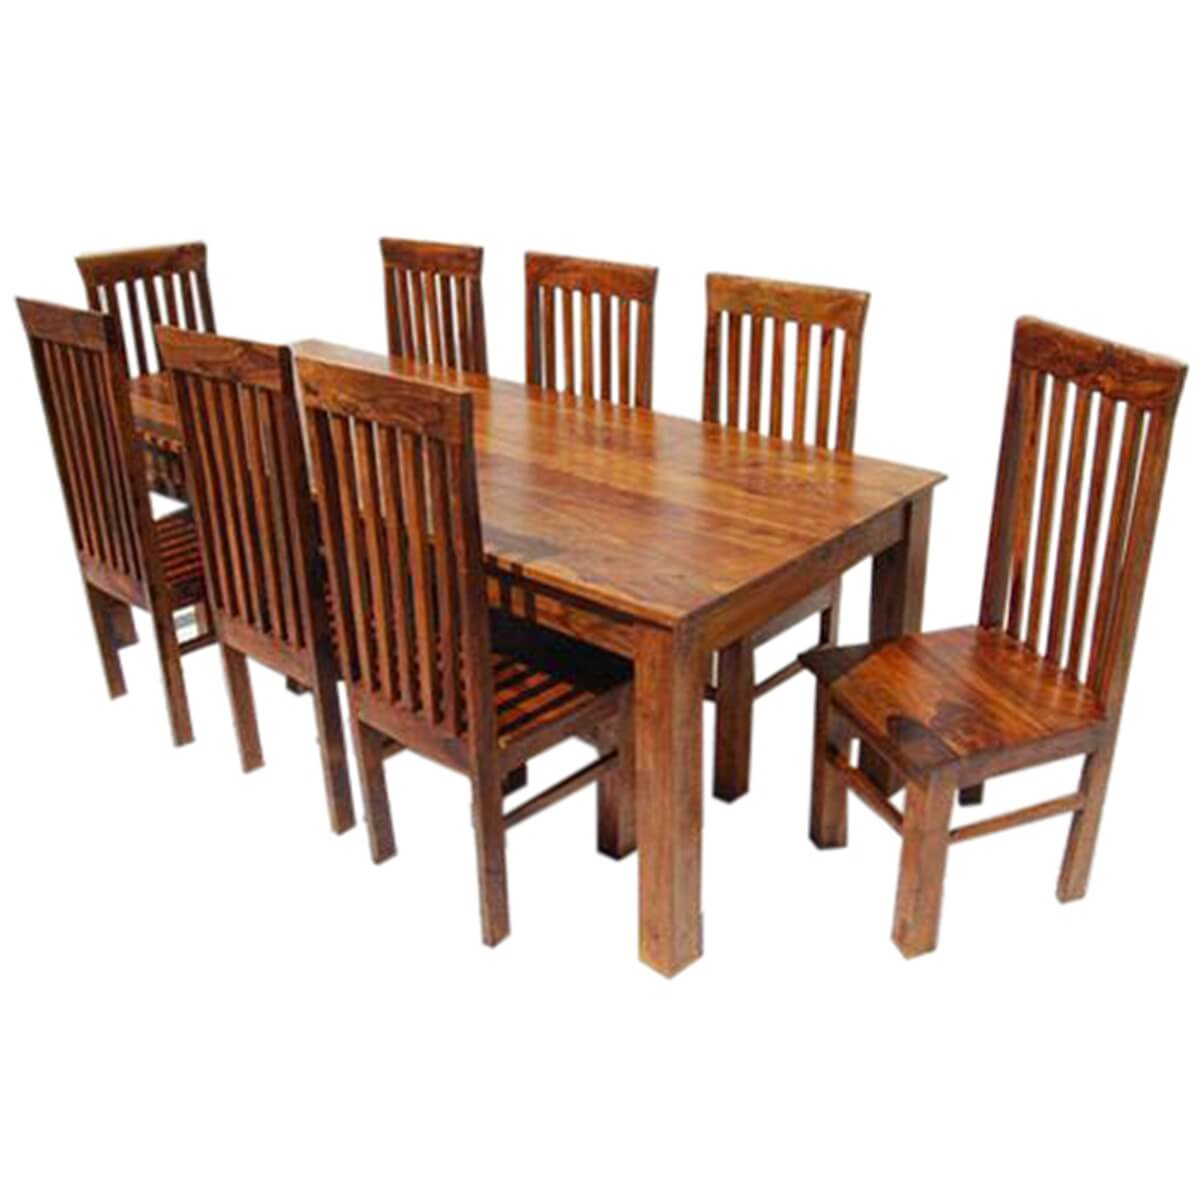 Rustic Classic Lincoln Study Dining Table and Chair Set : 17754 from www.sierralivingconcepts.com size 1200 x 1200 jpeg 323kB